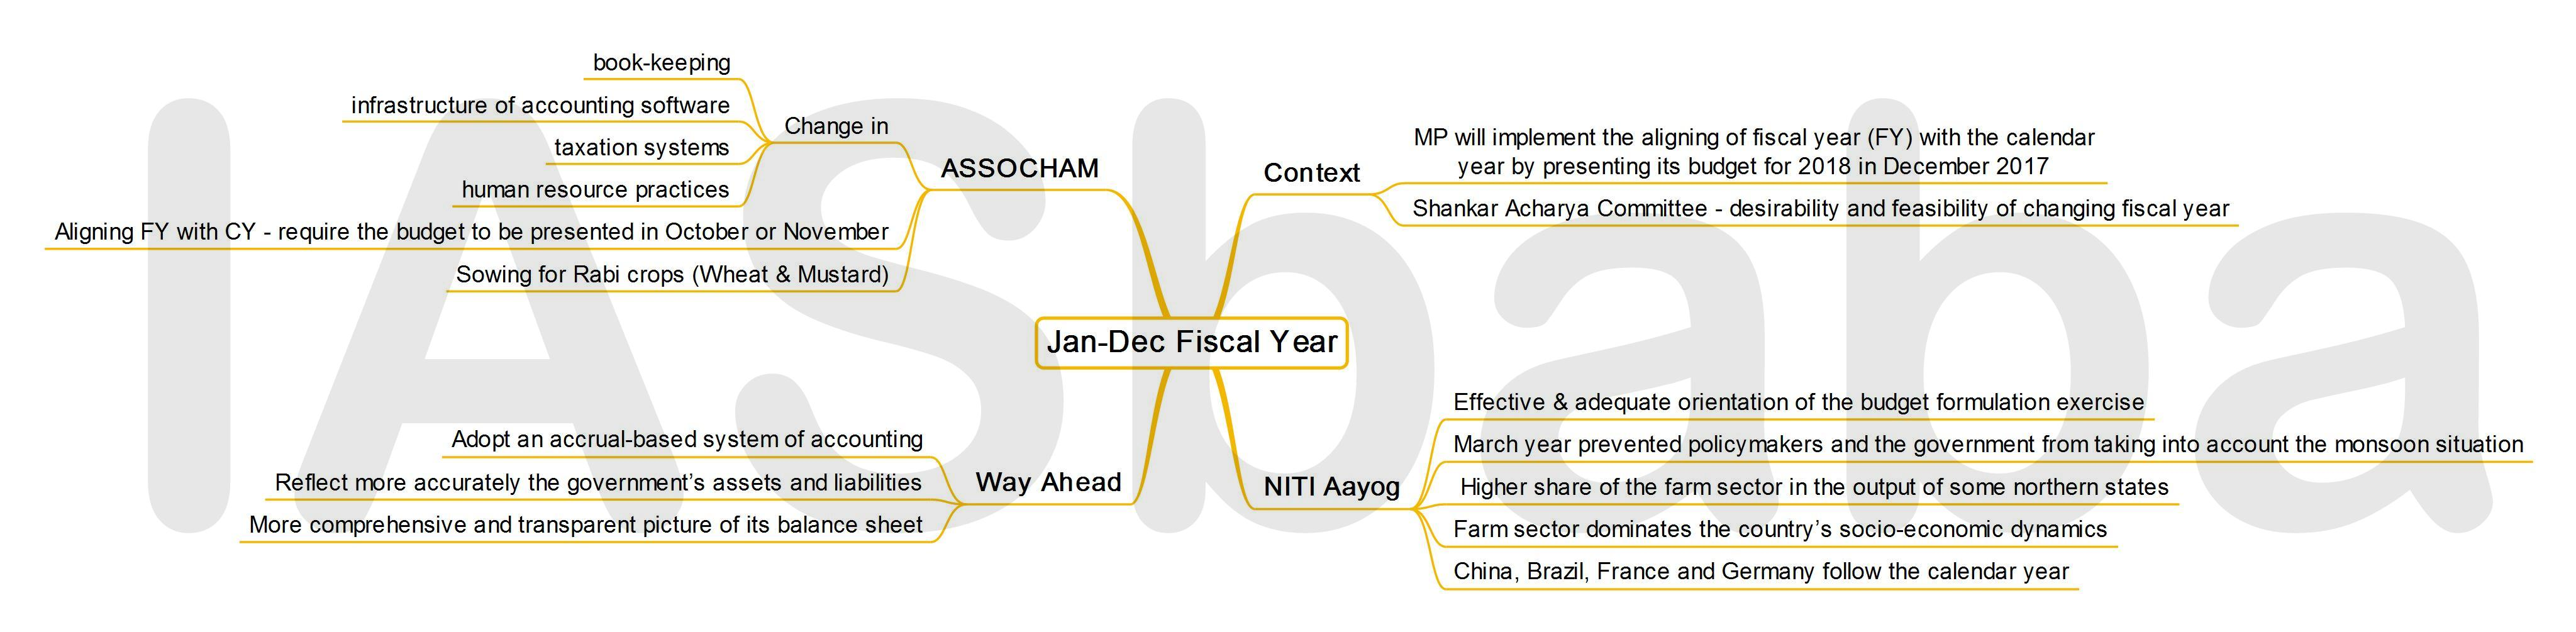 IASbaba's MINDMAP : Issue - Jan- Dec Fiscal Year